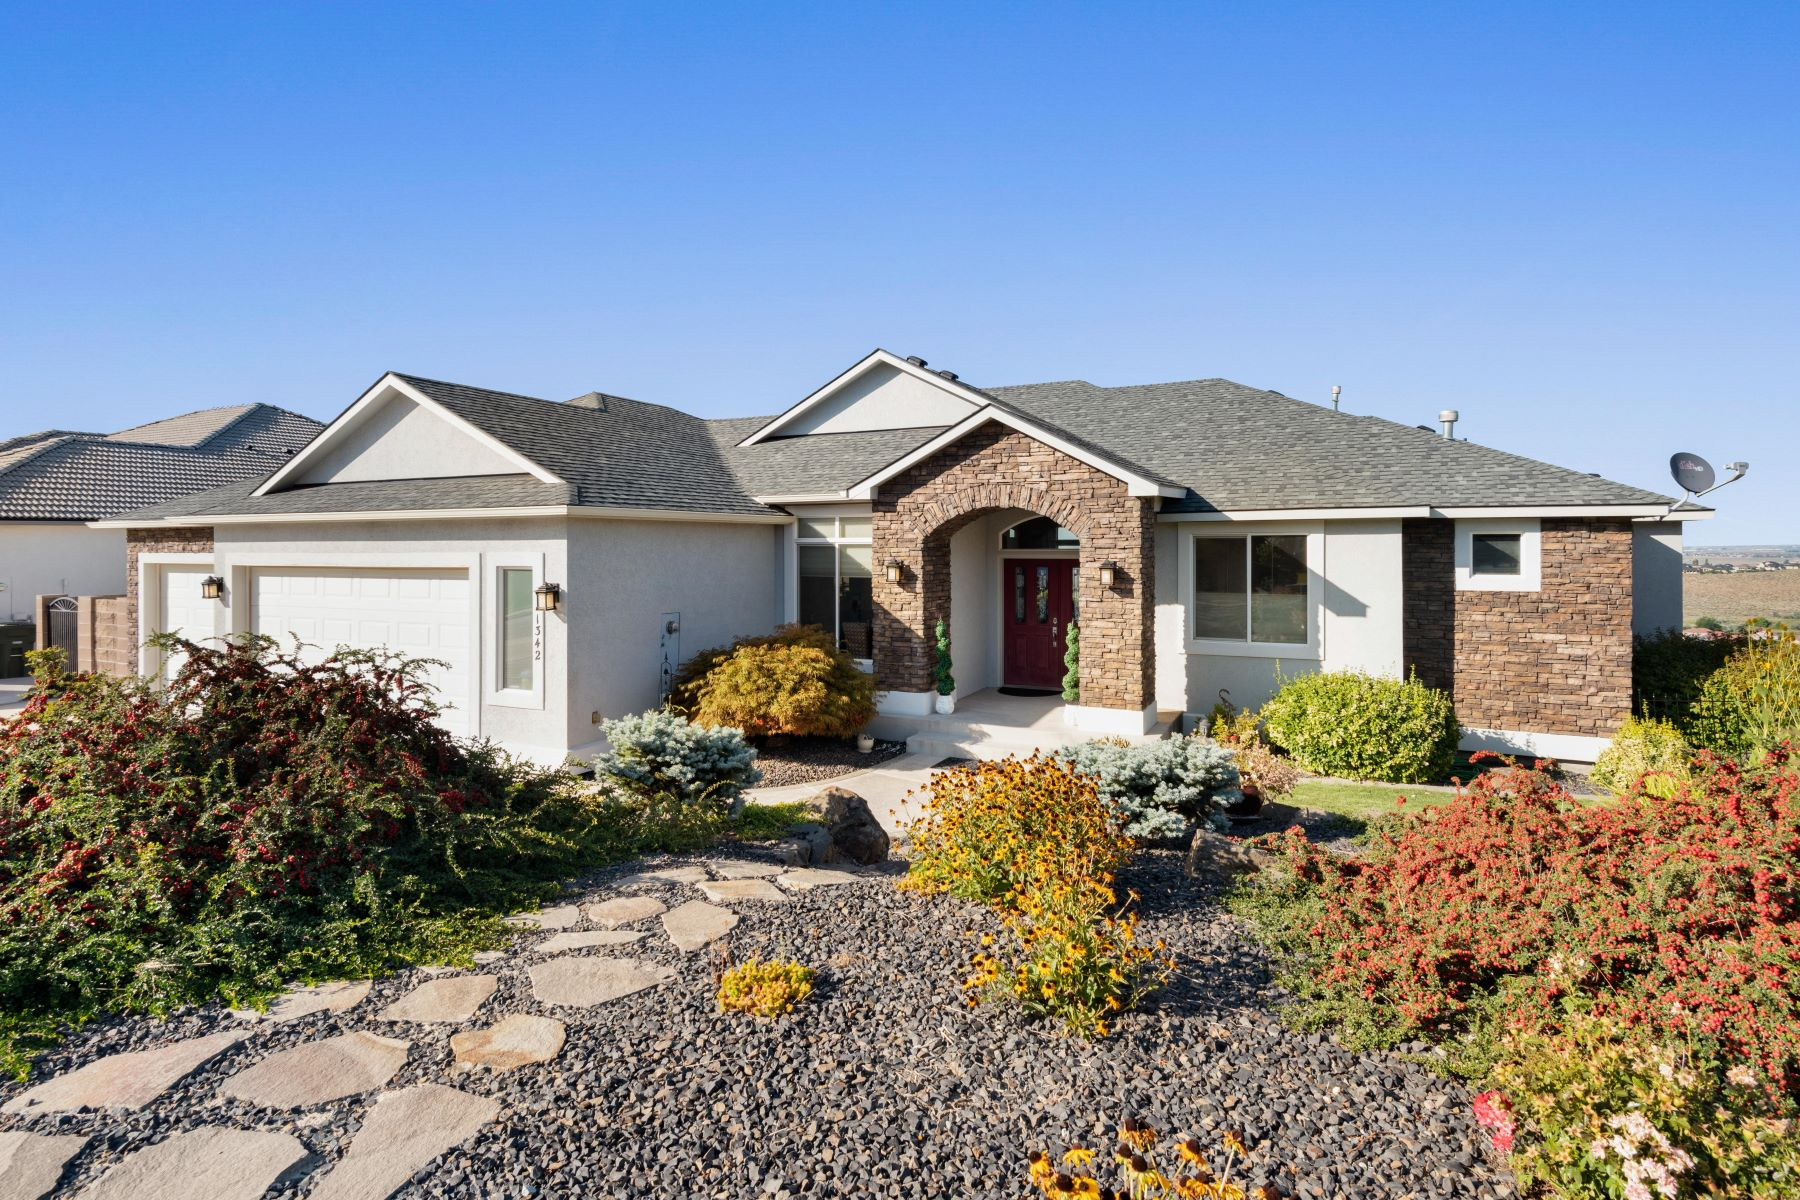 Single Family Homes for Sale at PANORAMIC VEIW 1342 WHITE BLUFFS ST Richland, Washington 99352 United States